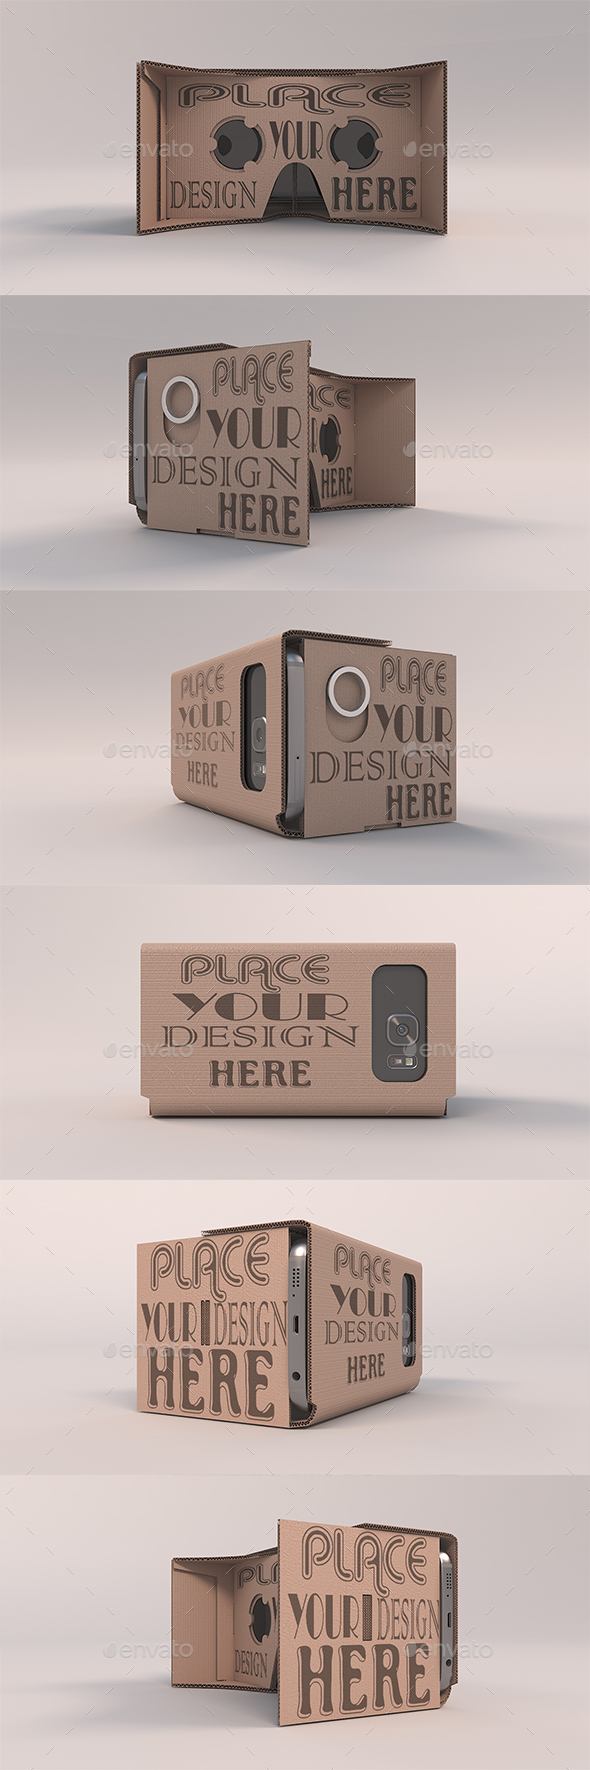 GraphicRiver Cardboard Headset Orbit Mockups 20554580